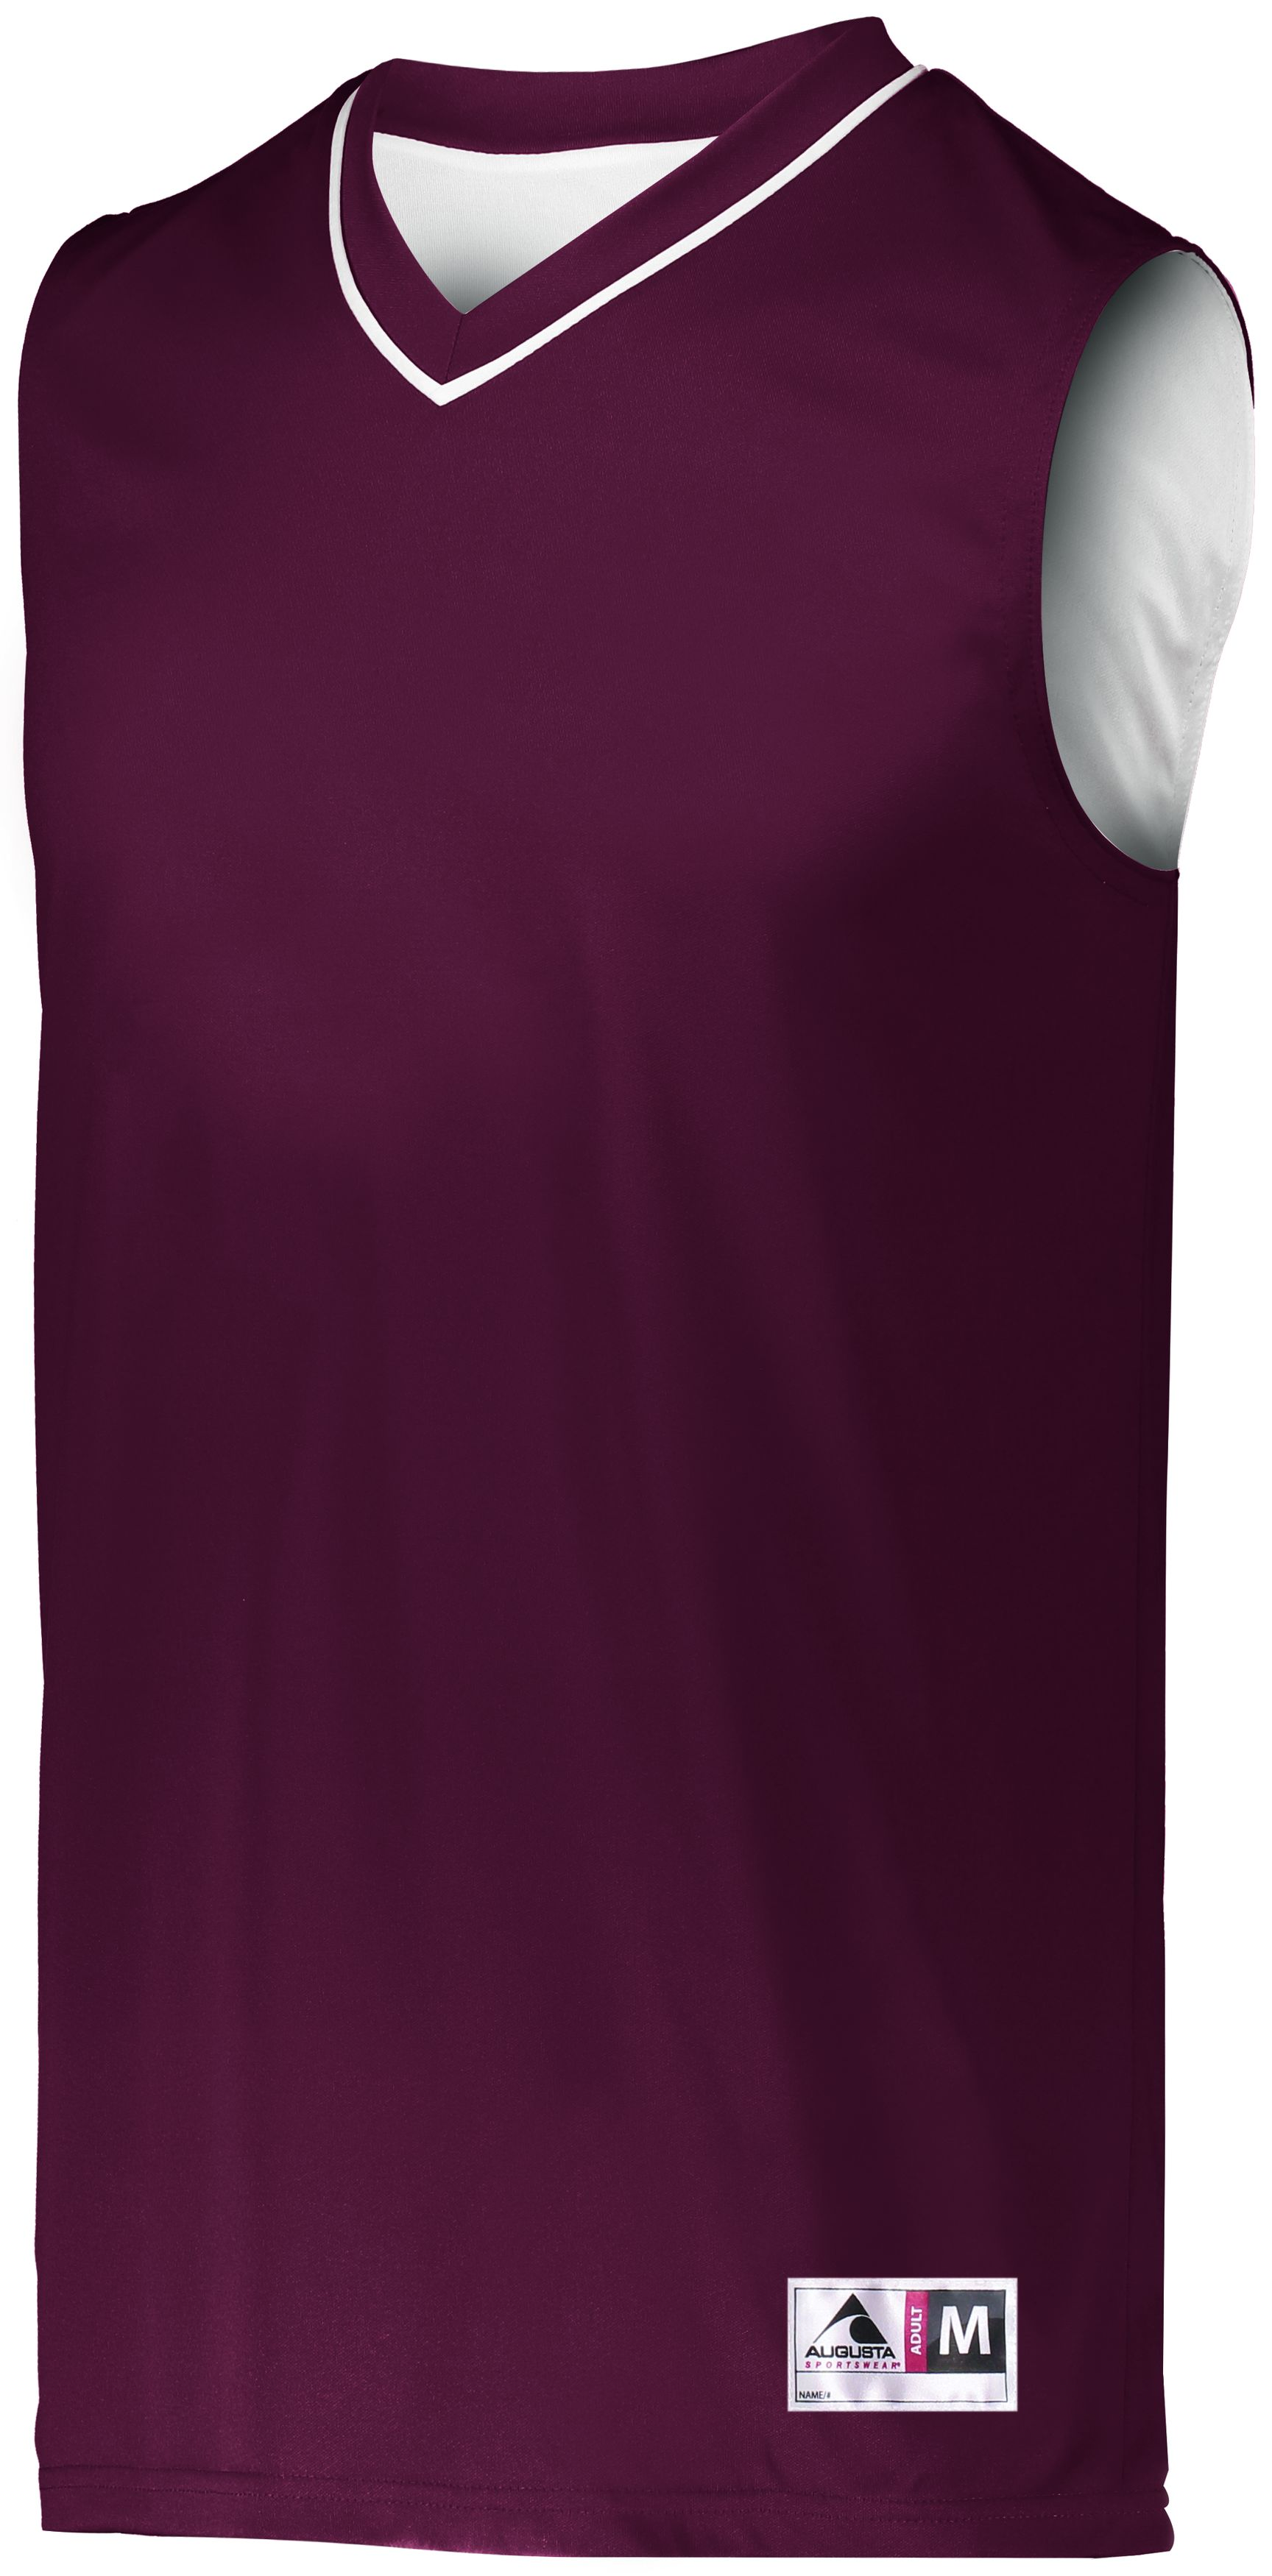 Reversible Two-Color Jersey - MAROON/WHITE